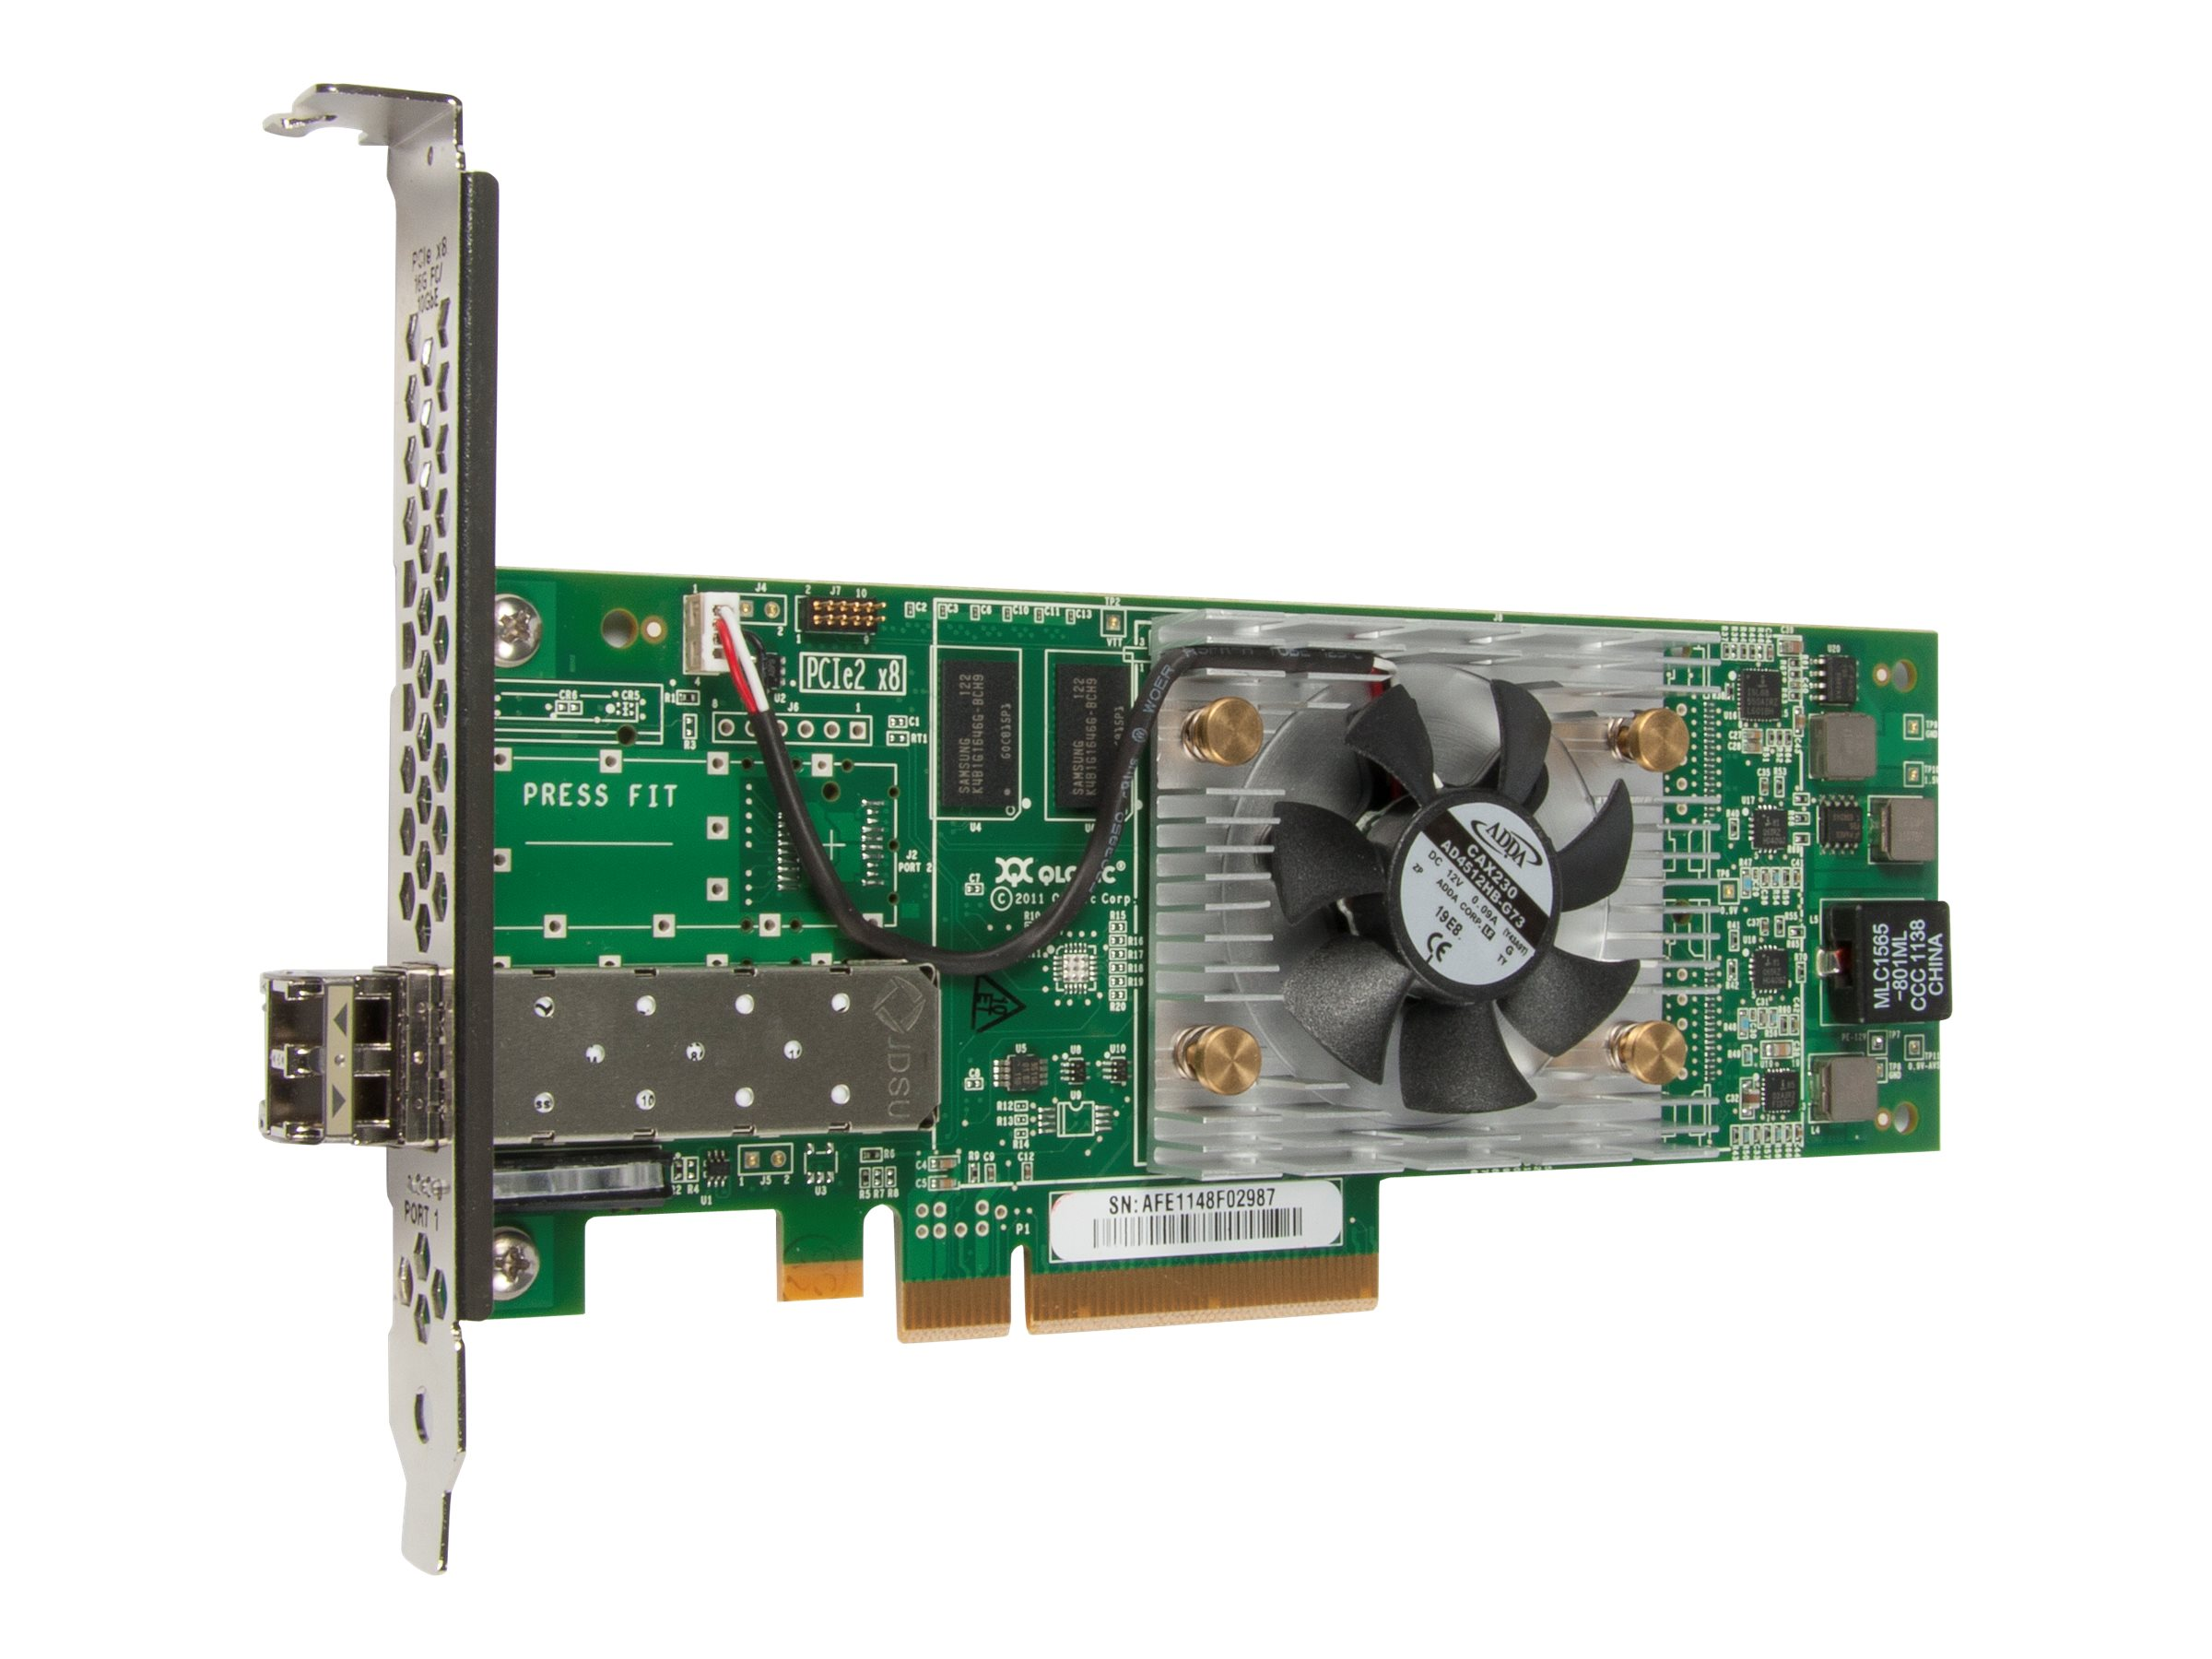 Qlogic 2600 Series Single-Port 16Gbps Fibre Channel-to-PCIe Adapters, QLE2670-CK